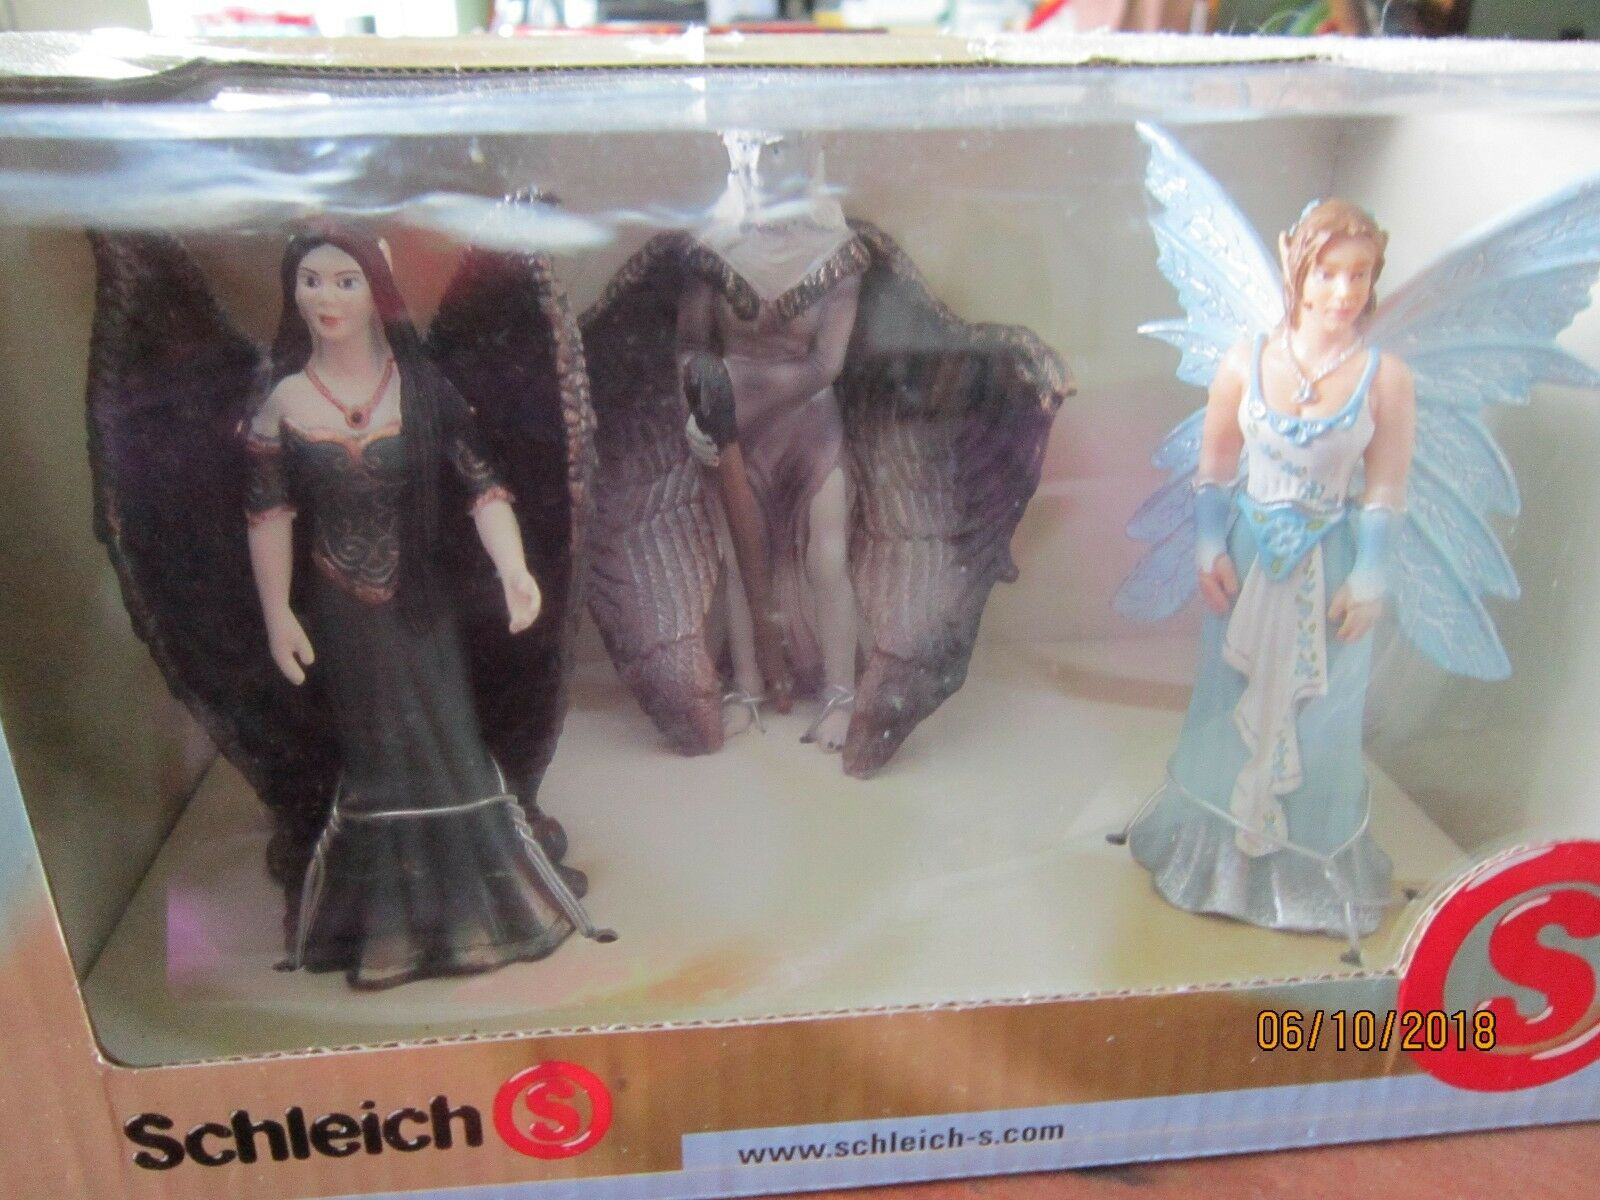 SCHLEICH Germany 3 Winged modelled & handpainted NEW Figures boxed toys